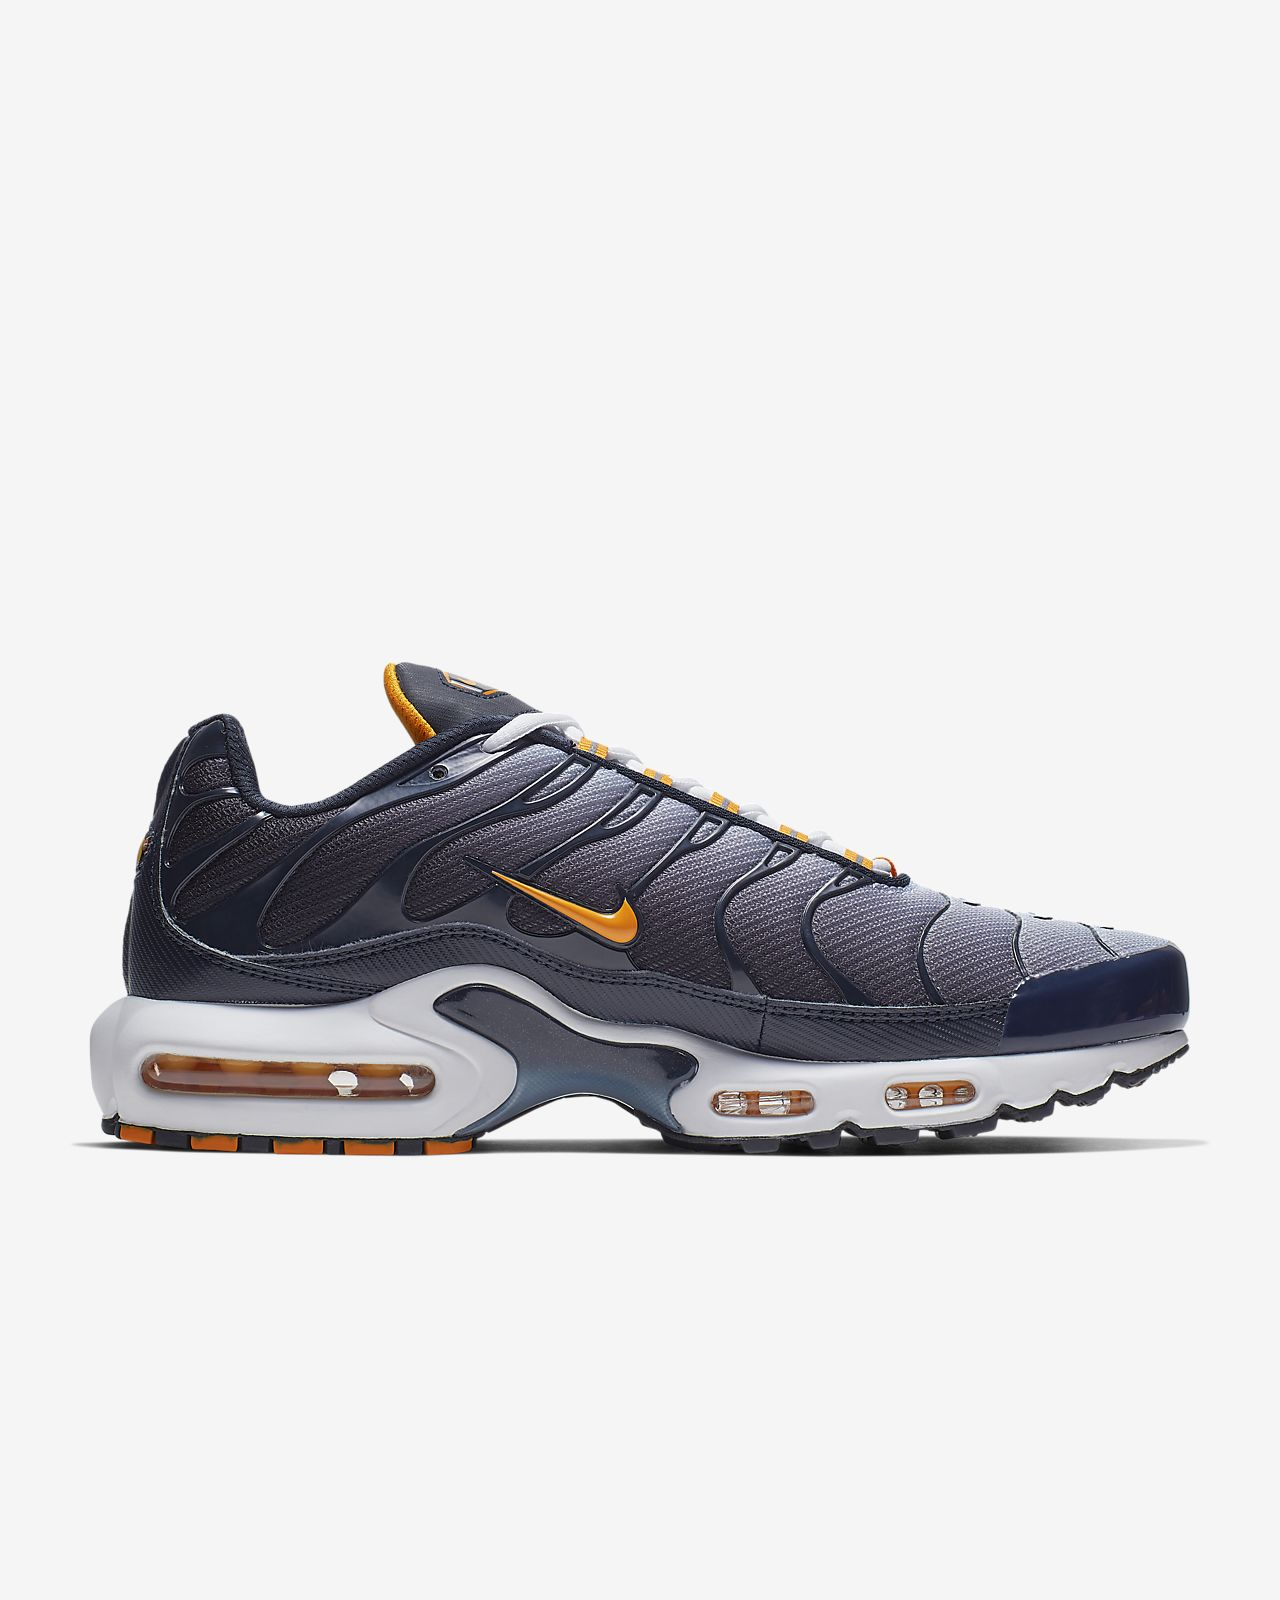 new product 022ad bf585 Chaussure Nike Air Max Plus pour Homme. Nike.com FR